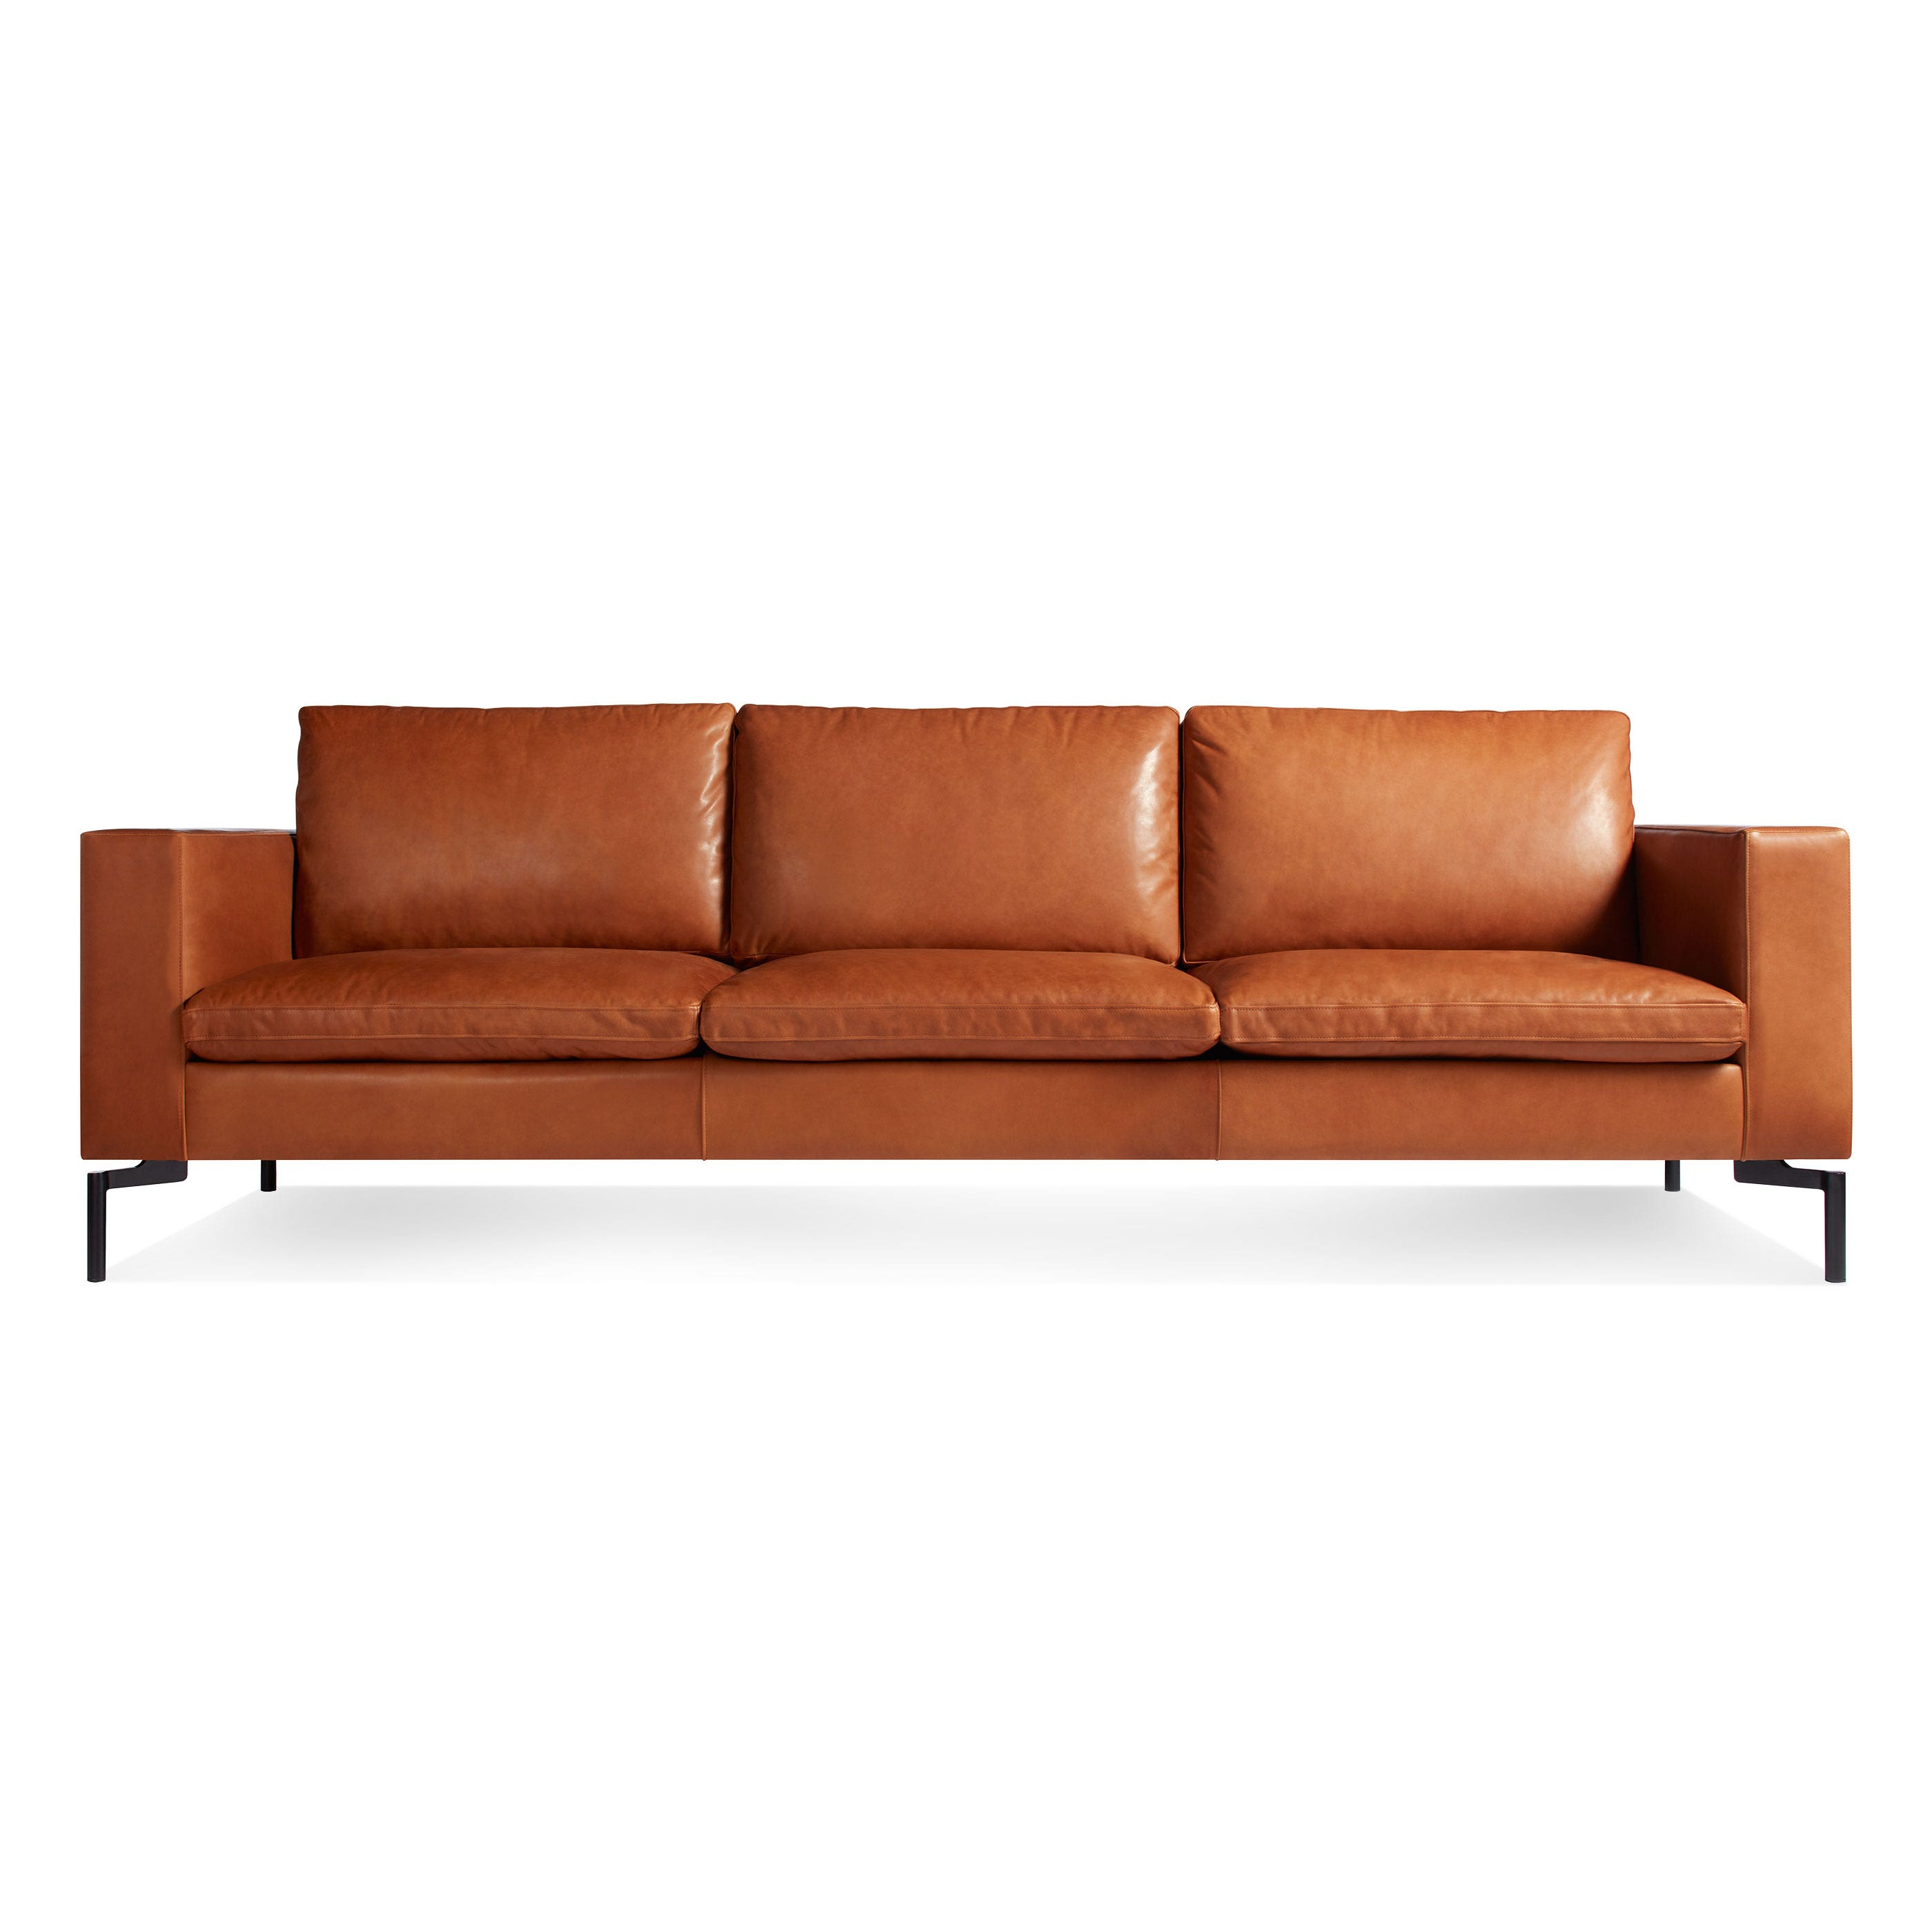 "New Standard 92"" Modern Leather Sofa"